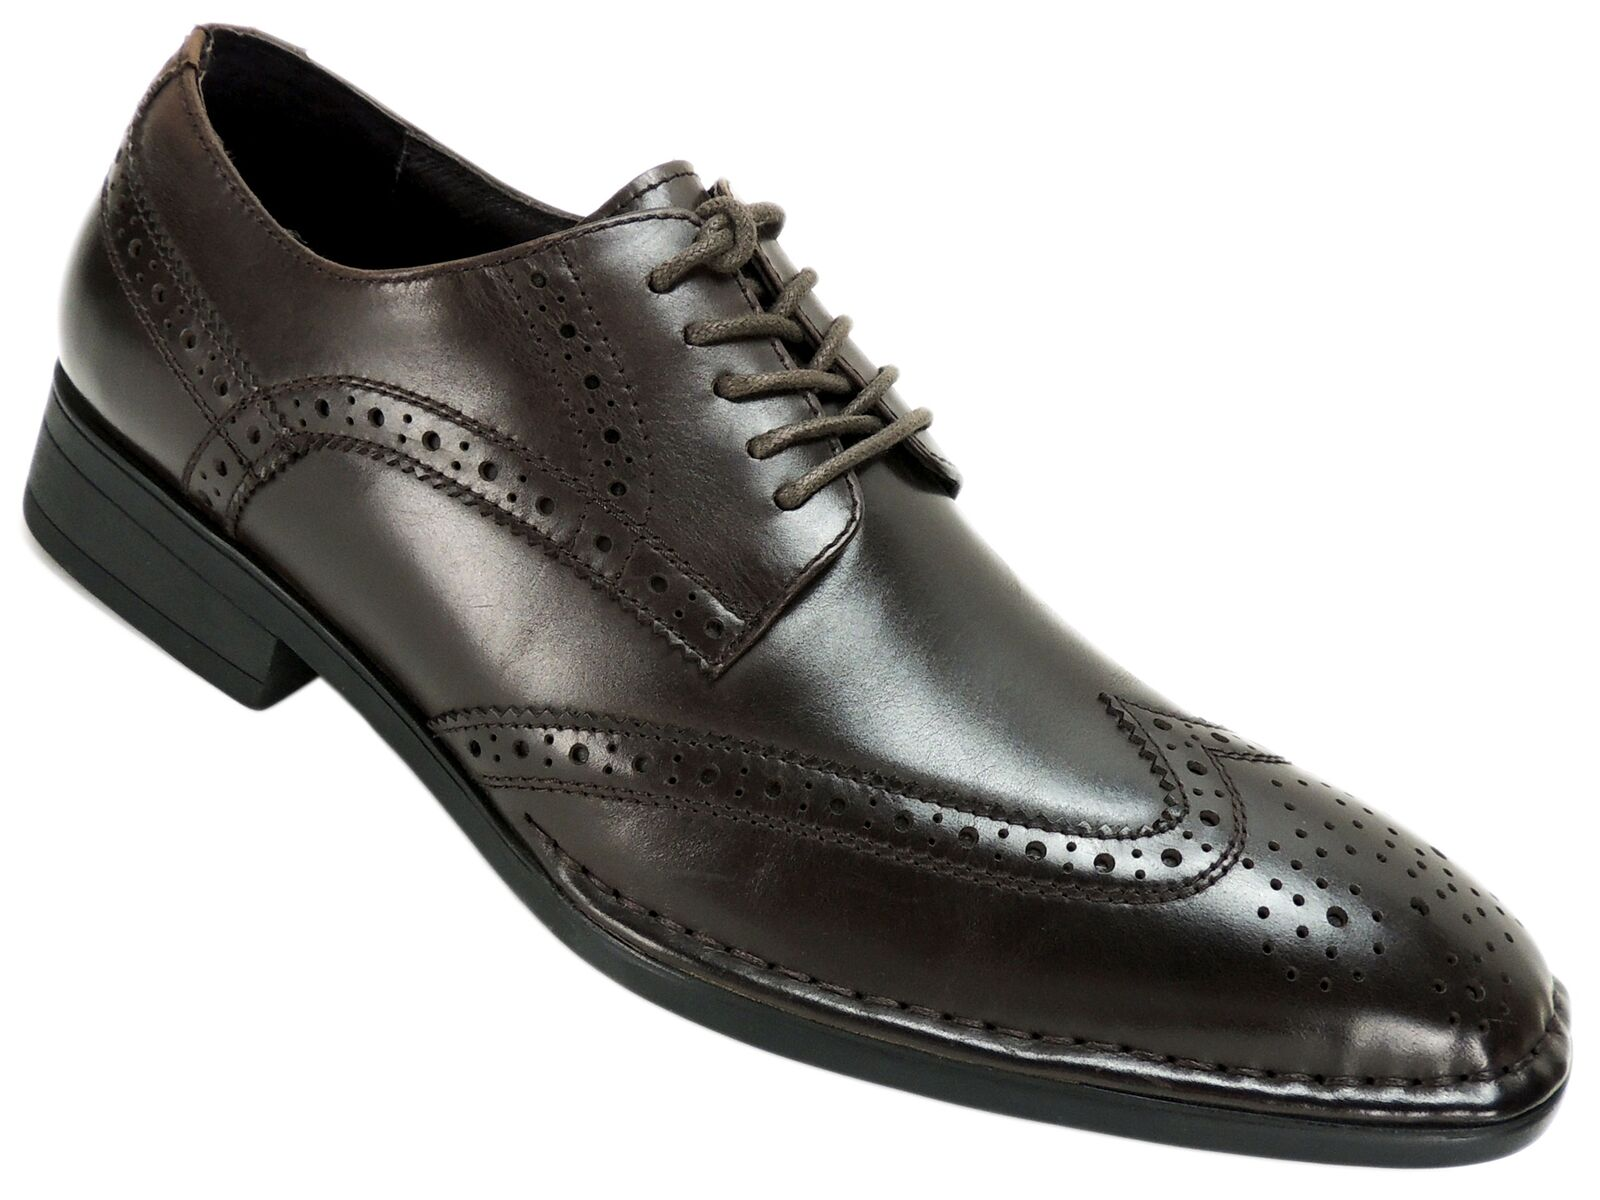 Kenneth Cole Oxfords New York Hombre segunda naturaleza Oxfords Cole DK Marrón Cuero M d197c0